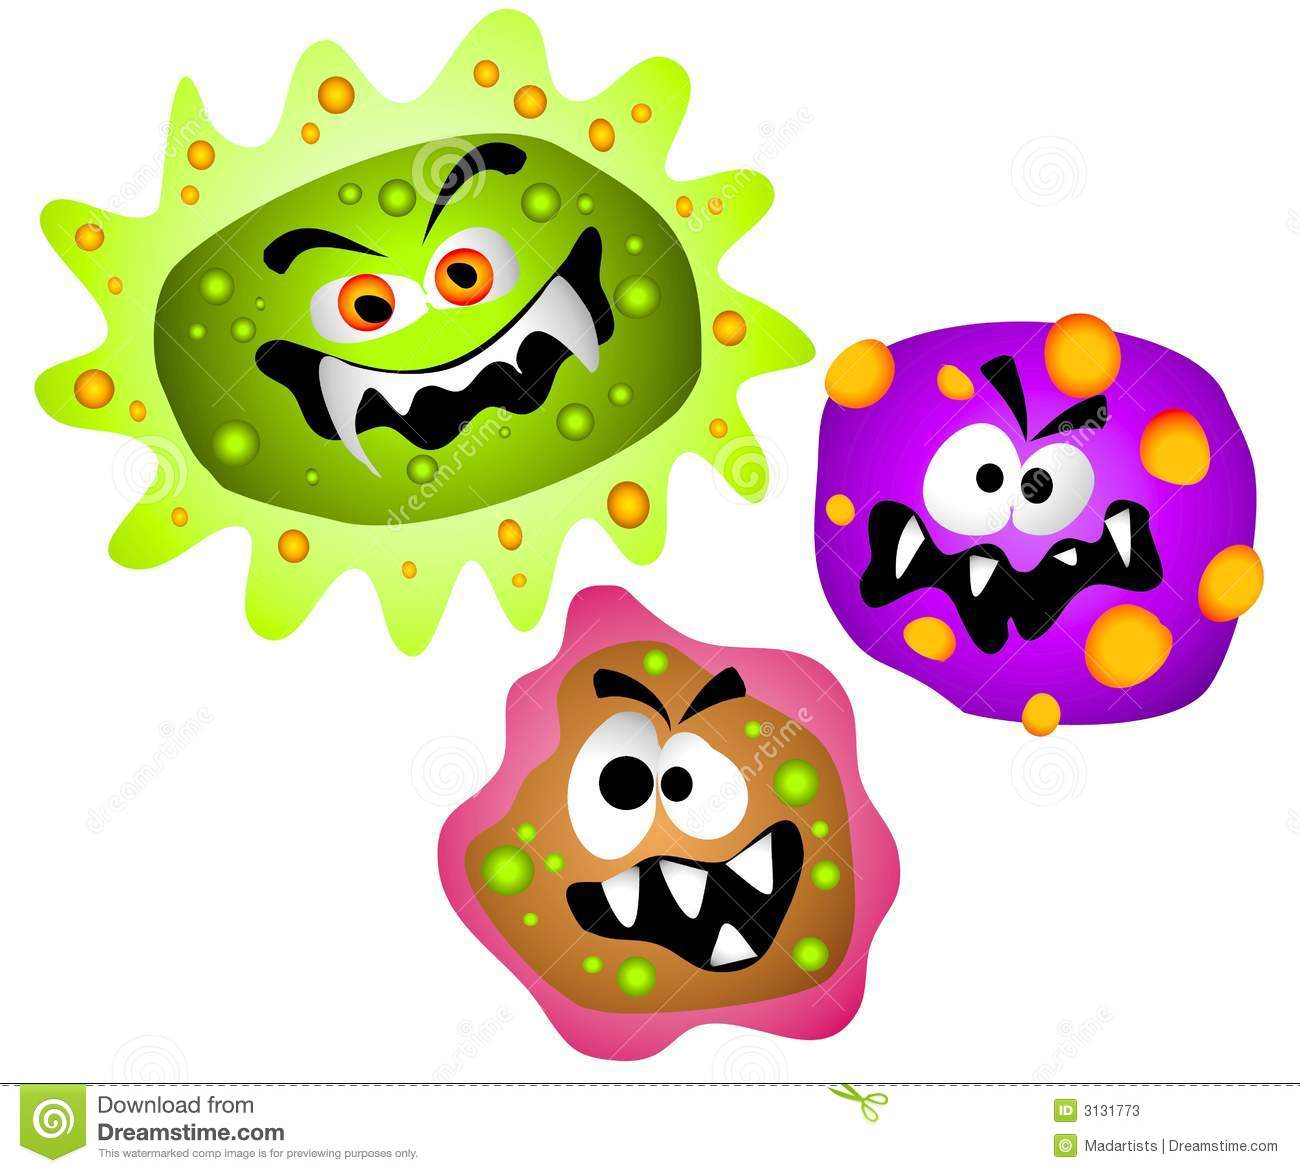 Germs Viruses Bacteria Clipart Stock Photos   Image  3131773